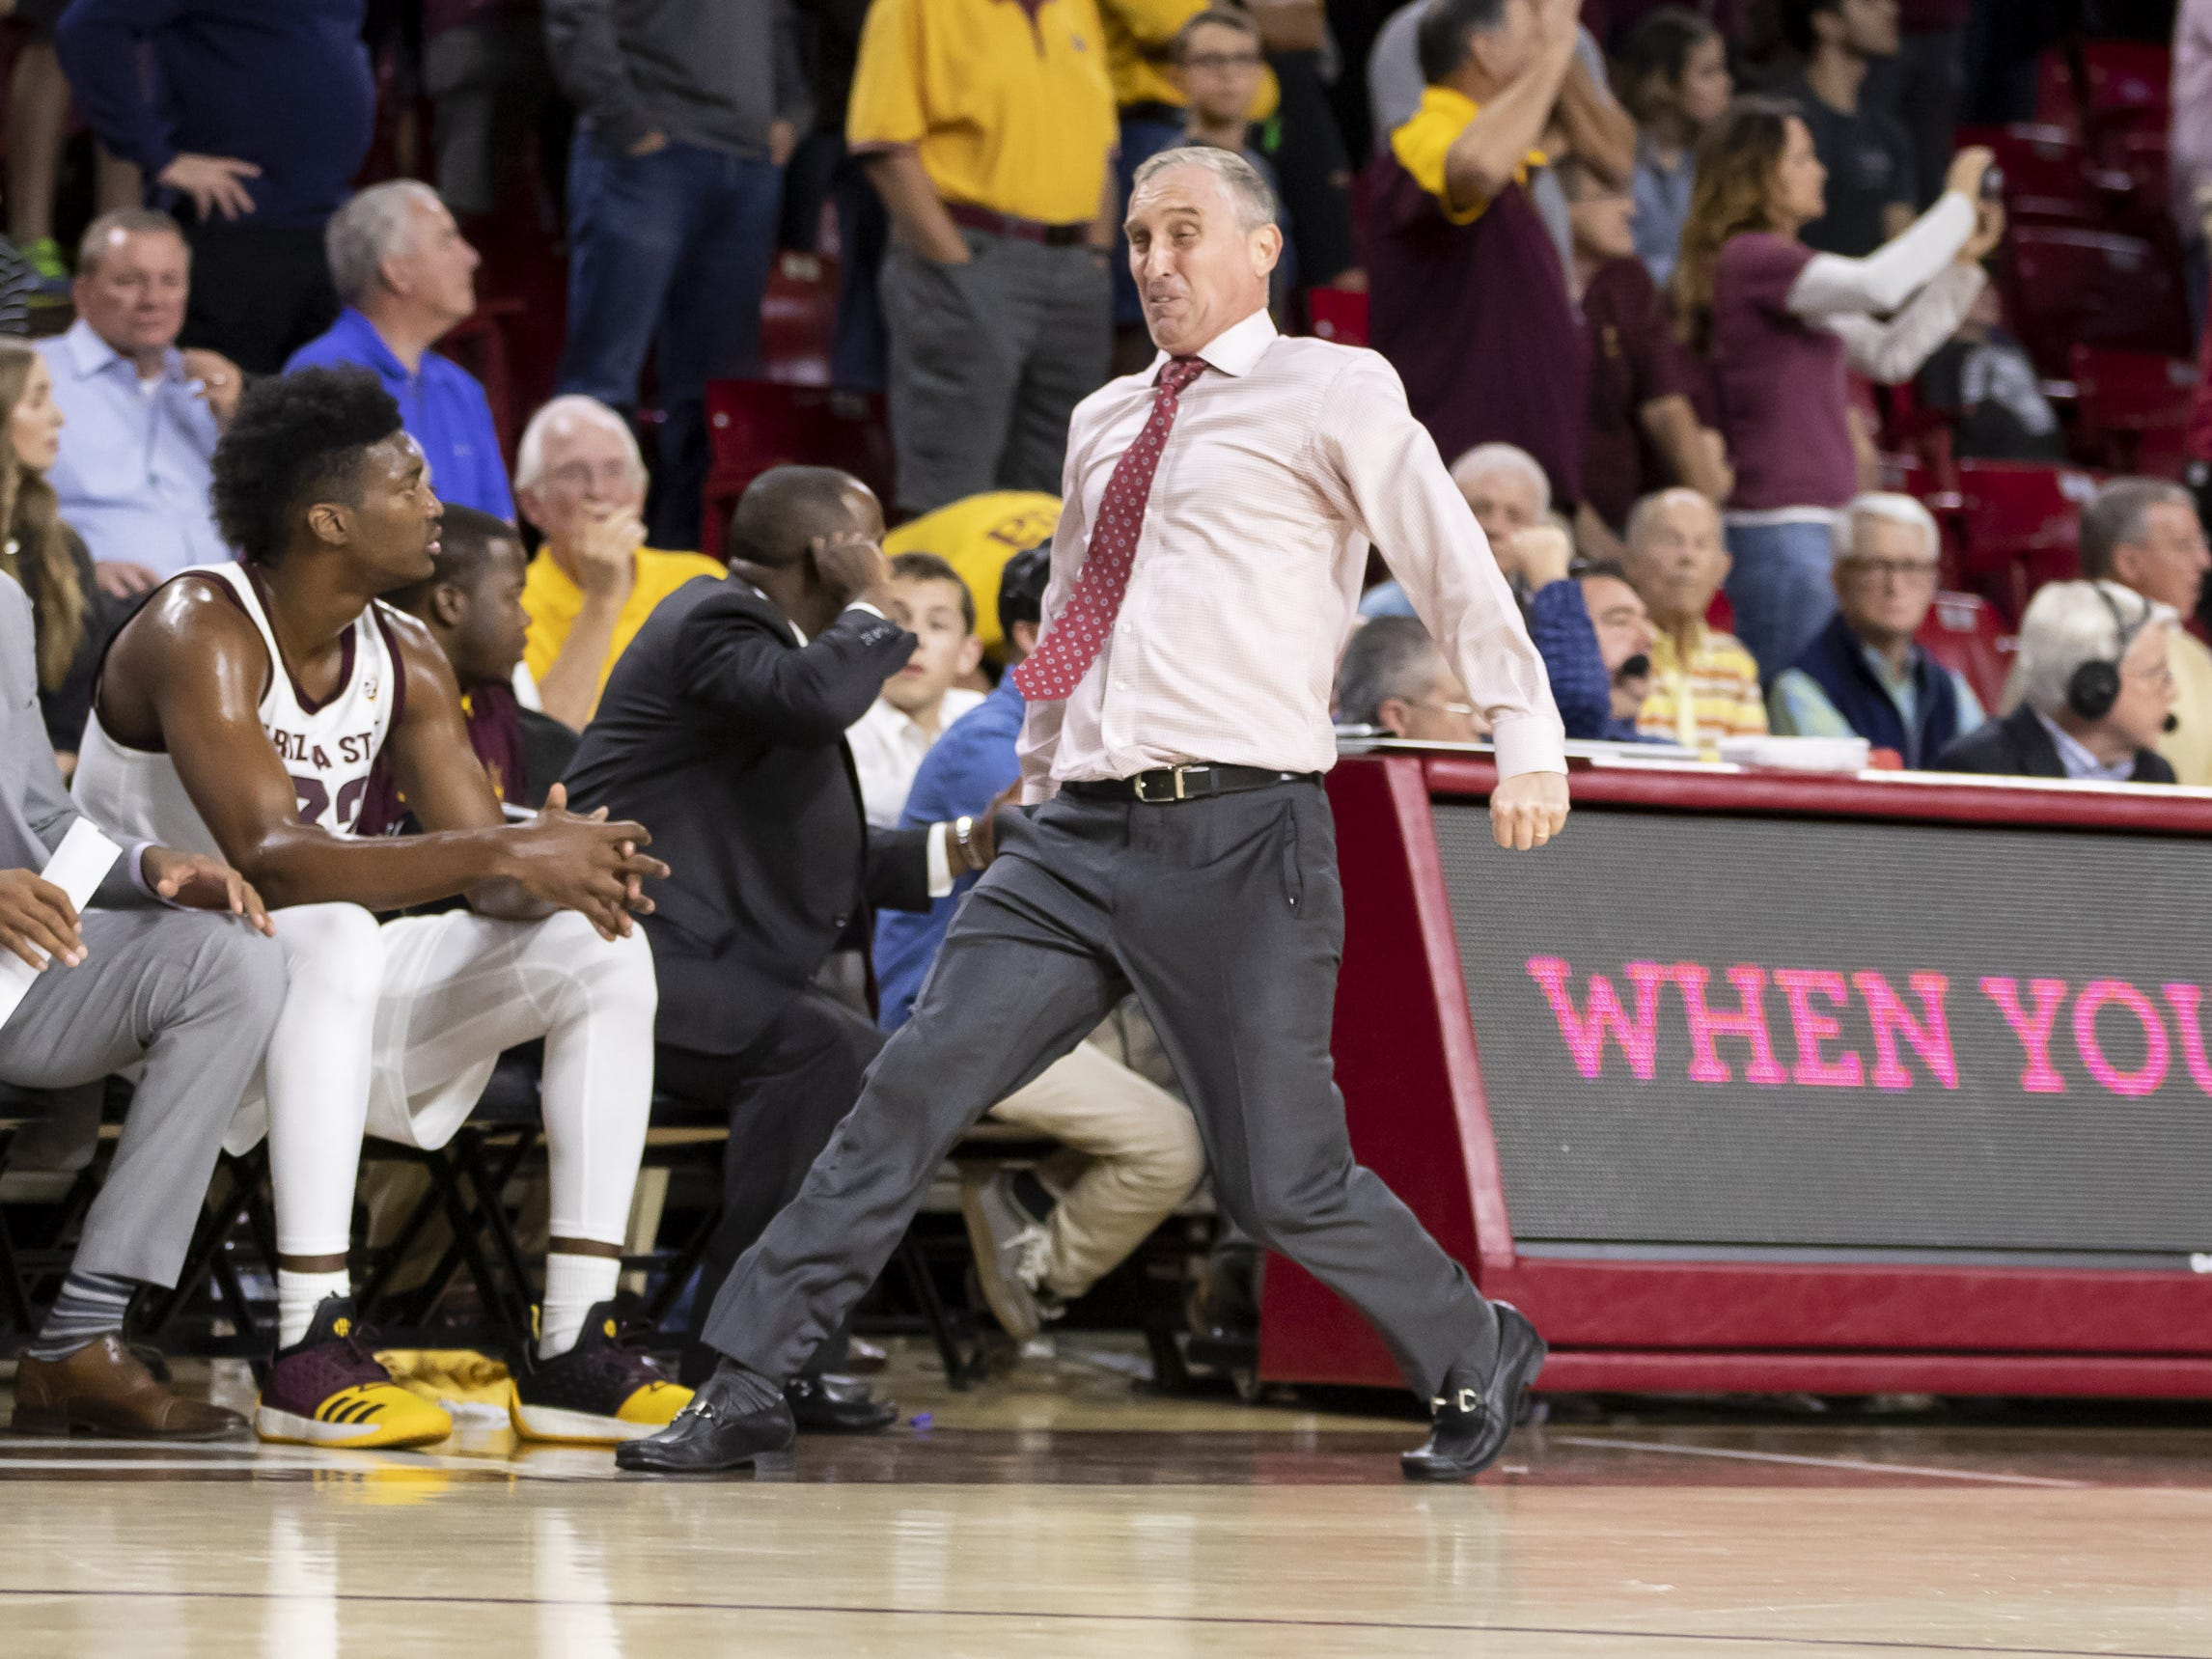 Head coach Bobby Hurley of the Arizona State Sun Devils reacts following a call during the game against the Cal State Fullerton Titans at Wells Fargo Arena on Tuesday, November 6, 2018 in Tempe, Arizona.